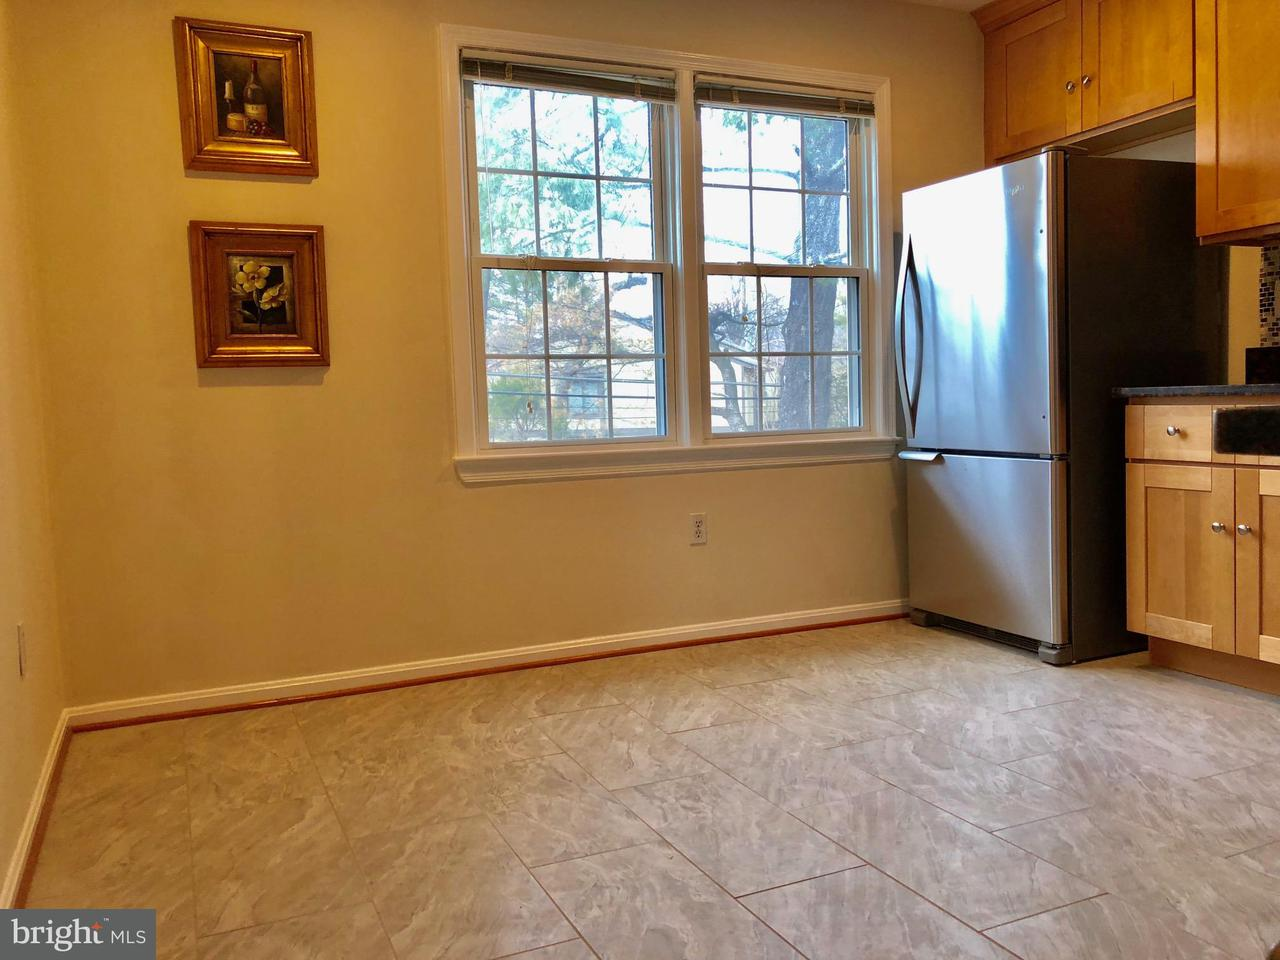 Additional photo for property listing at 6891 Chelsea Road 6891 Chelsea Road McLean, Βιρτζινια 22101 Ηνωμενεσ Πολιτειεσ